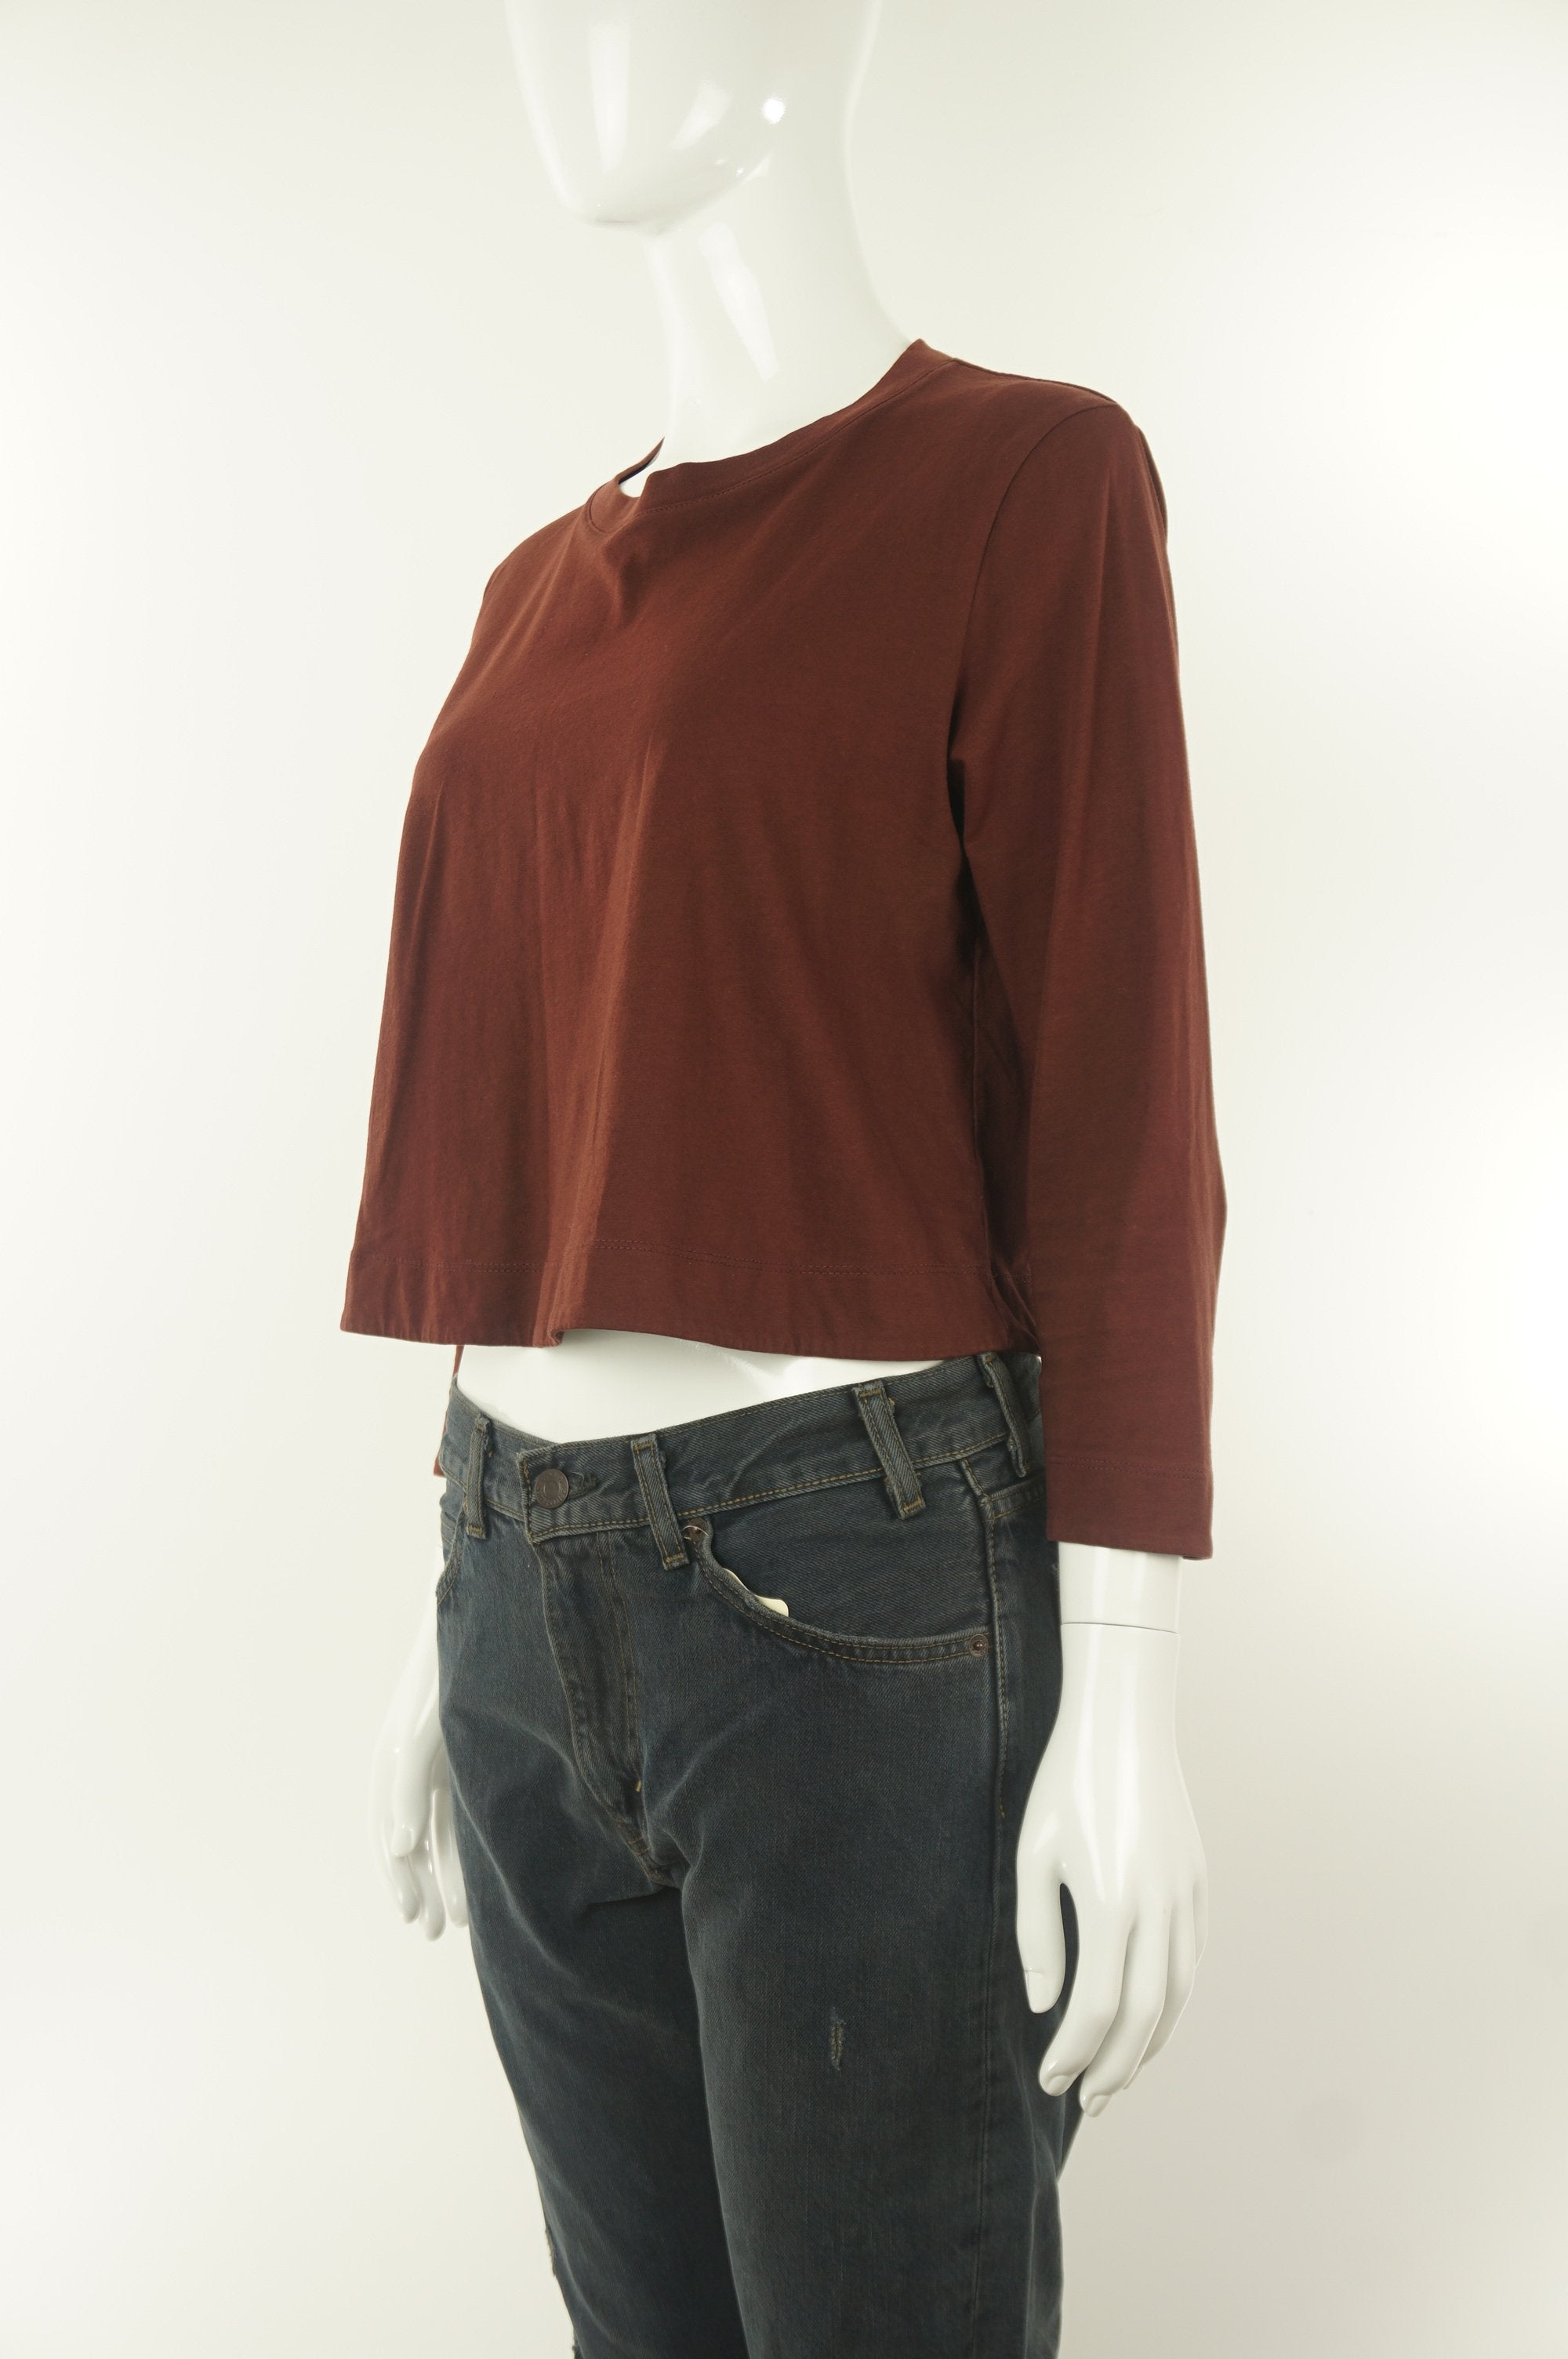 Wilfred Cute Comfy Burgundy Crop Top, If you believe in comfortable fashion that makes you look cute and not like you're trying so hard, this burgundy crop top is for you. , Red, 100% cotton,